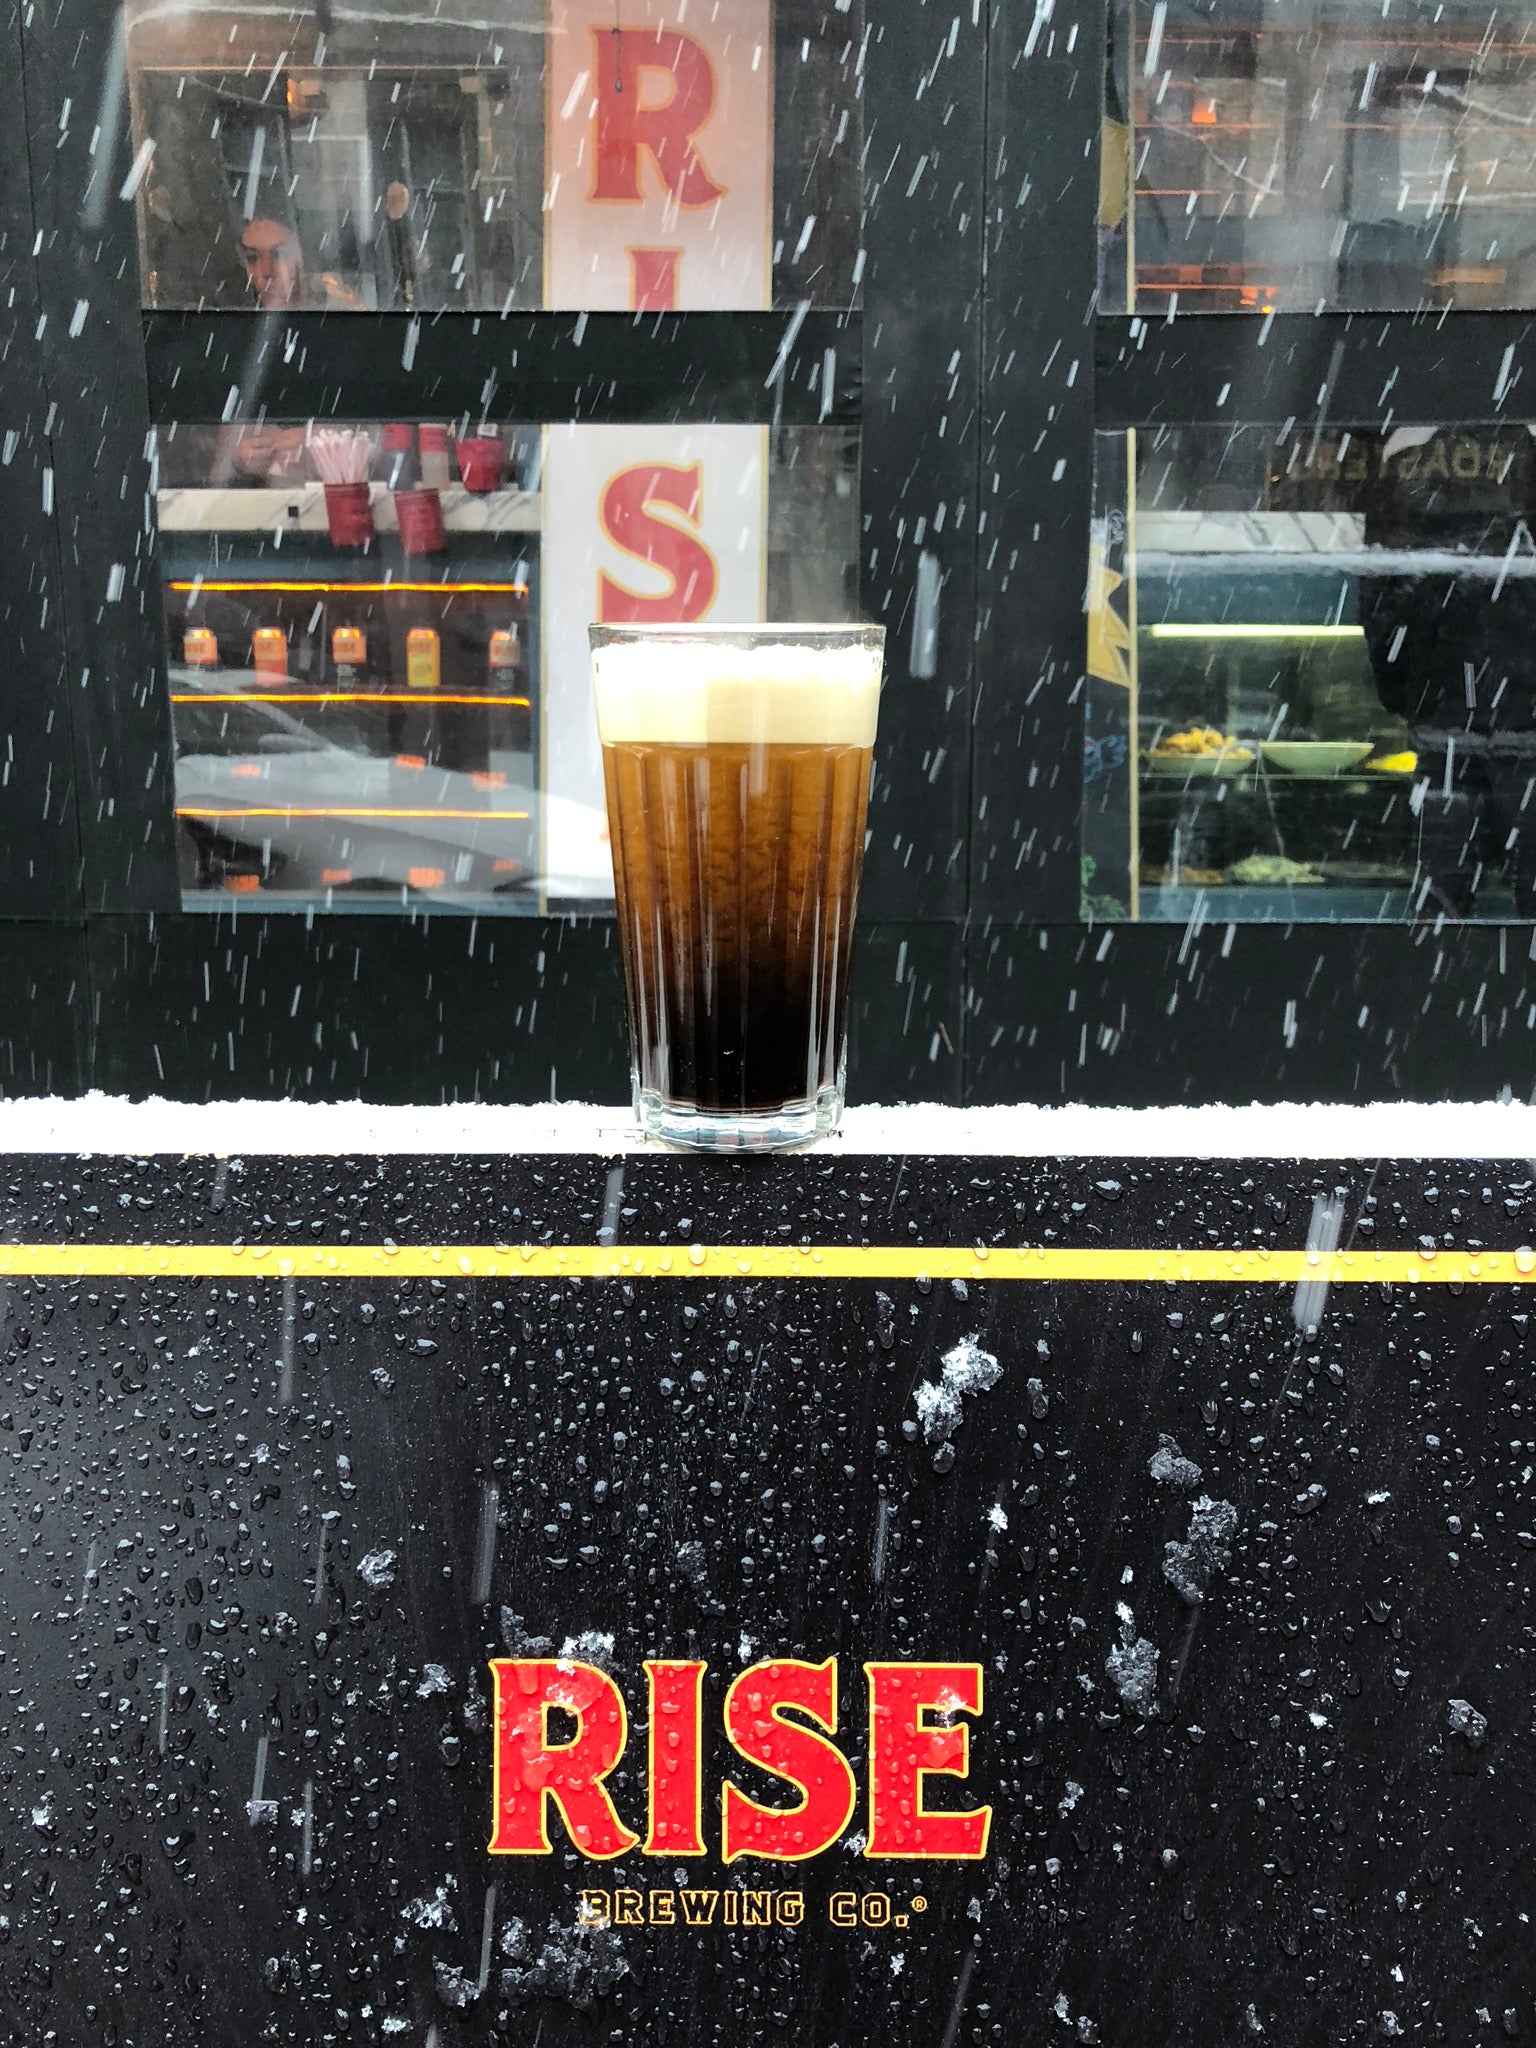 Glass of RISE nitro cold brew coffee in the snow, outside of cafe - RISE Brewing Co.